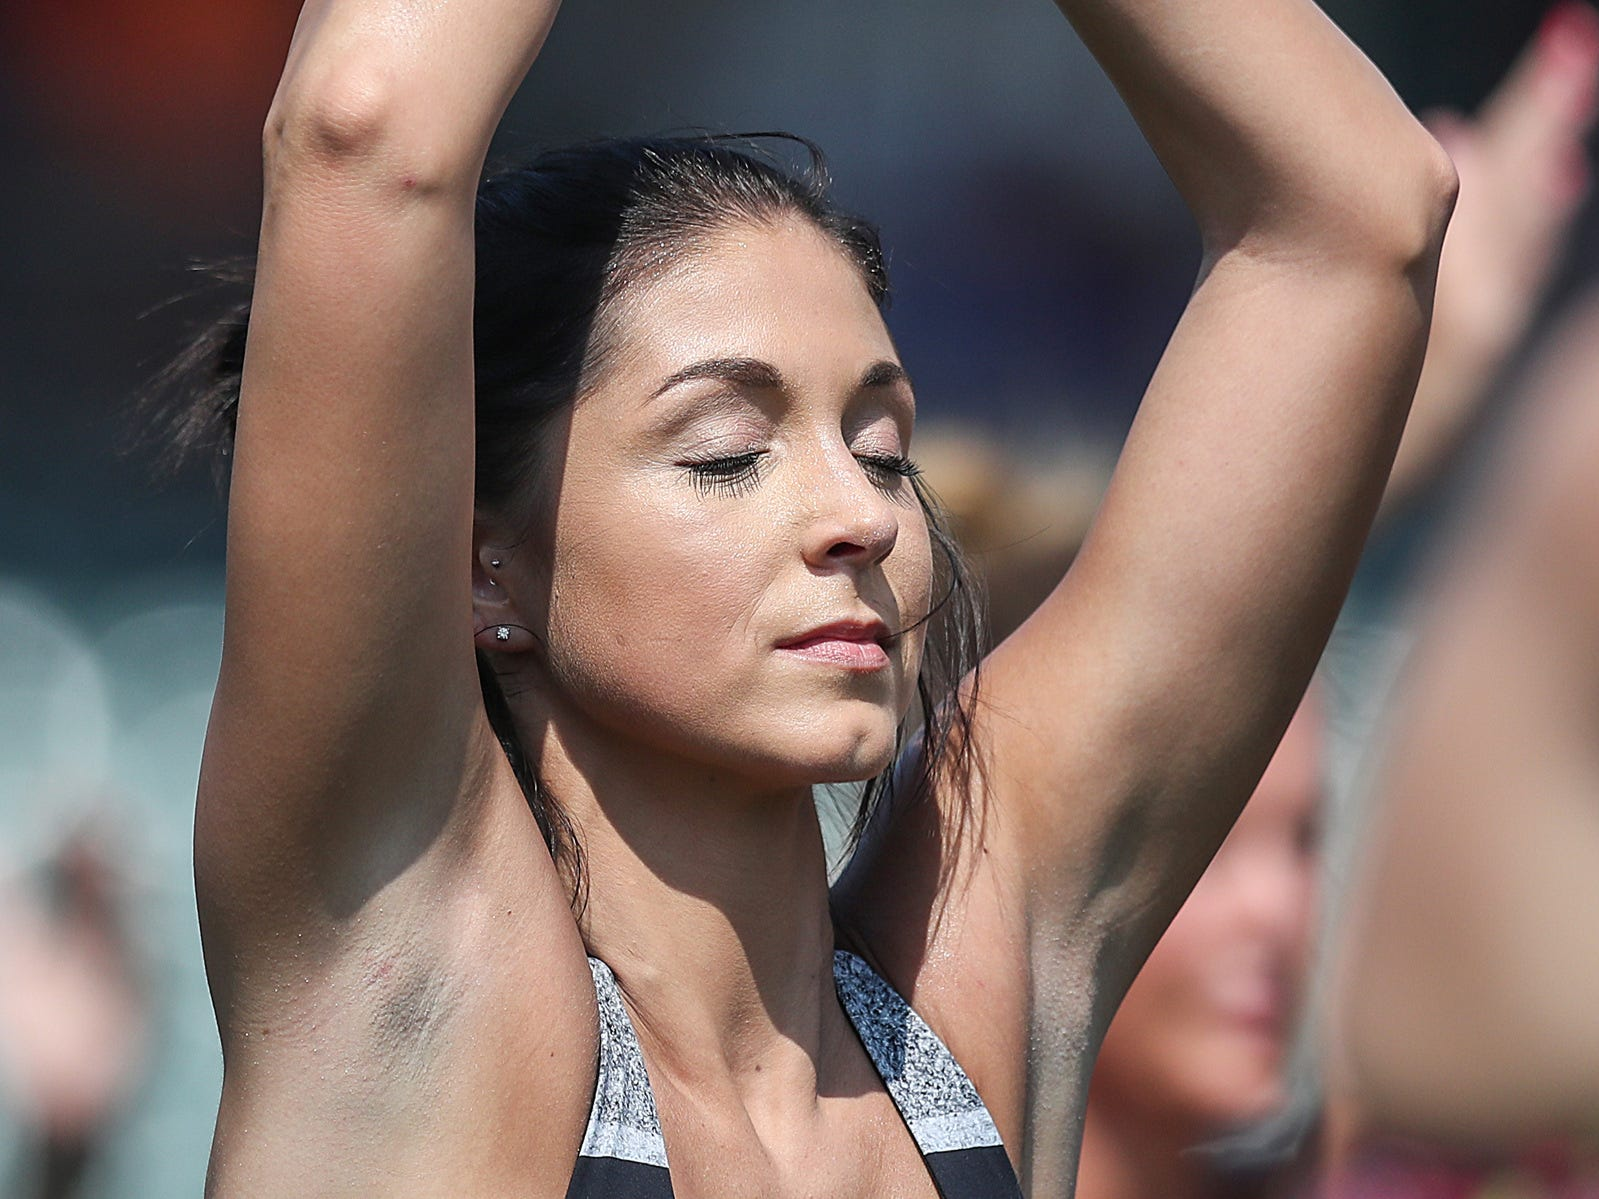 Alanna Martella, an anchor for RTV6, practices yoga at Yoga in the Outfield at Victory Field in Indianapolis, Sunday, Aug. 12, 2018.